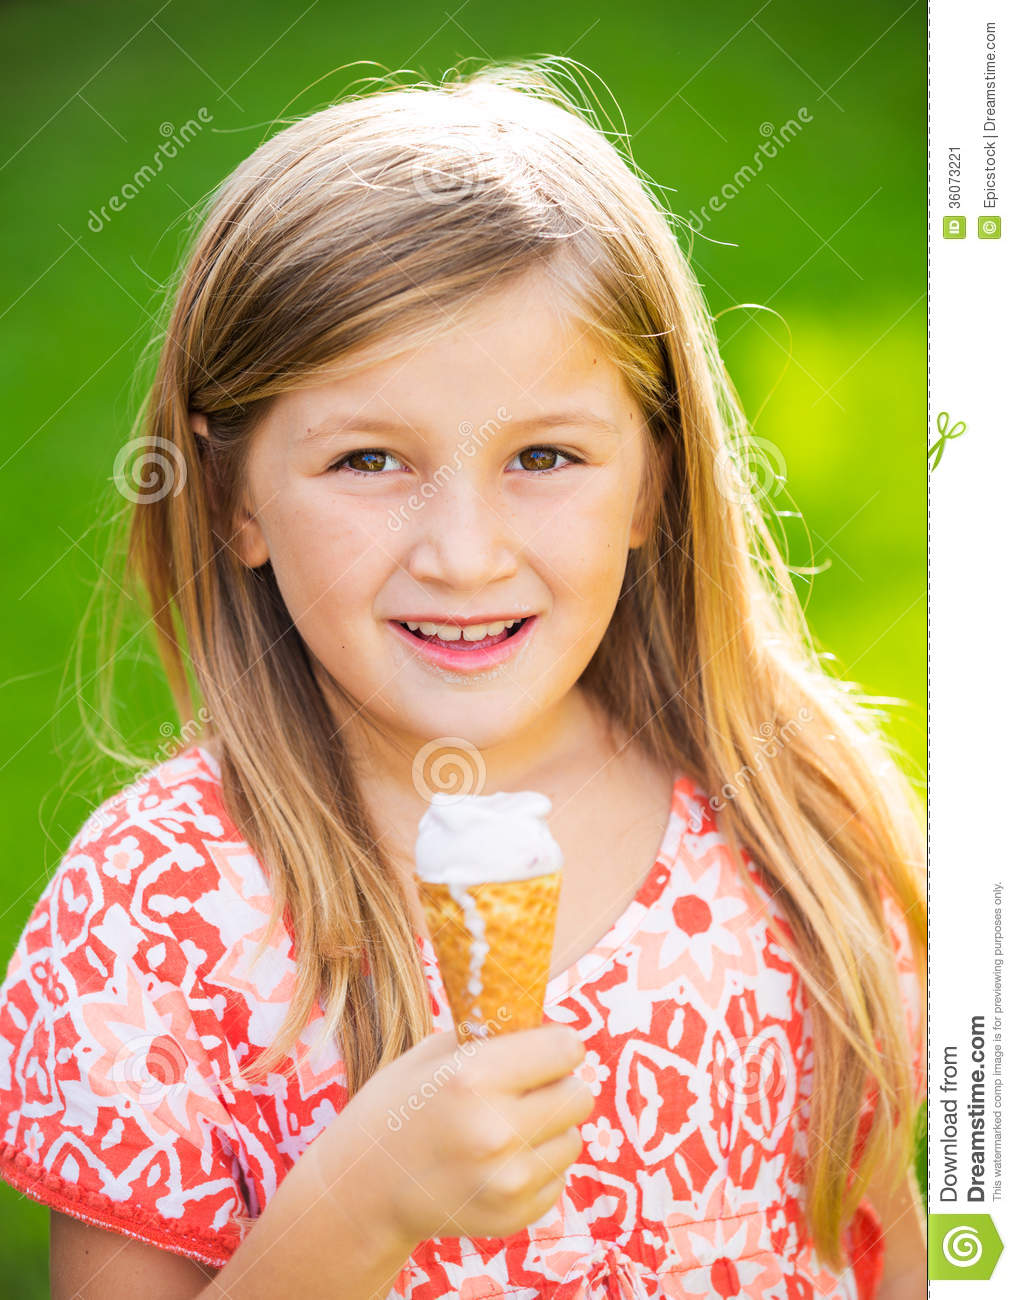 Cute Little Girl Eating Ice Cream Stock Image Image